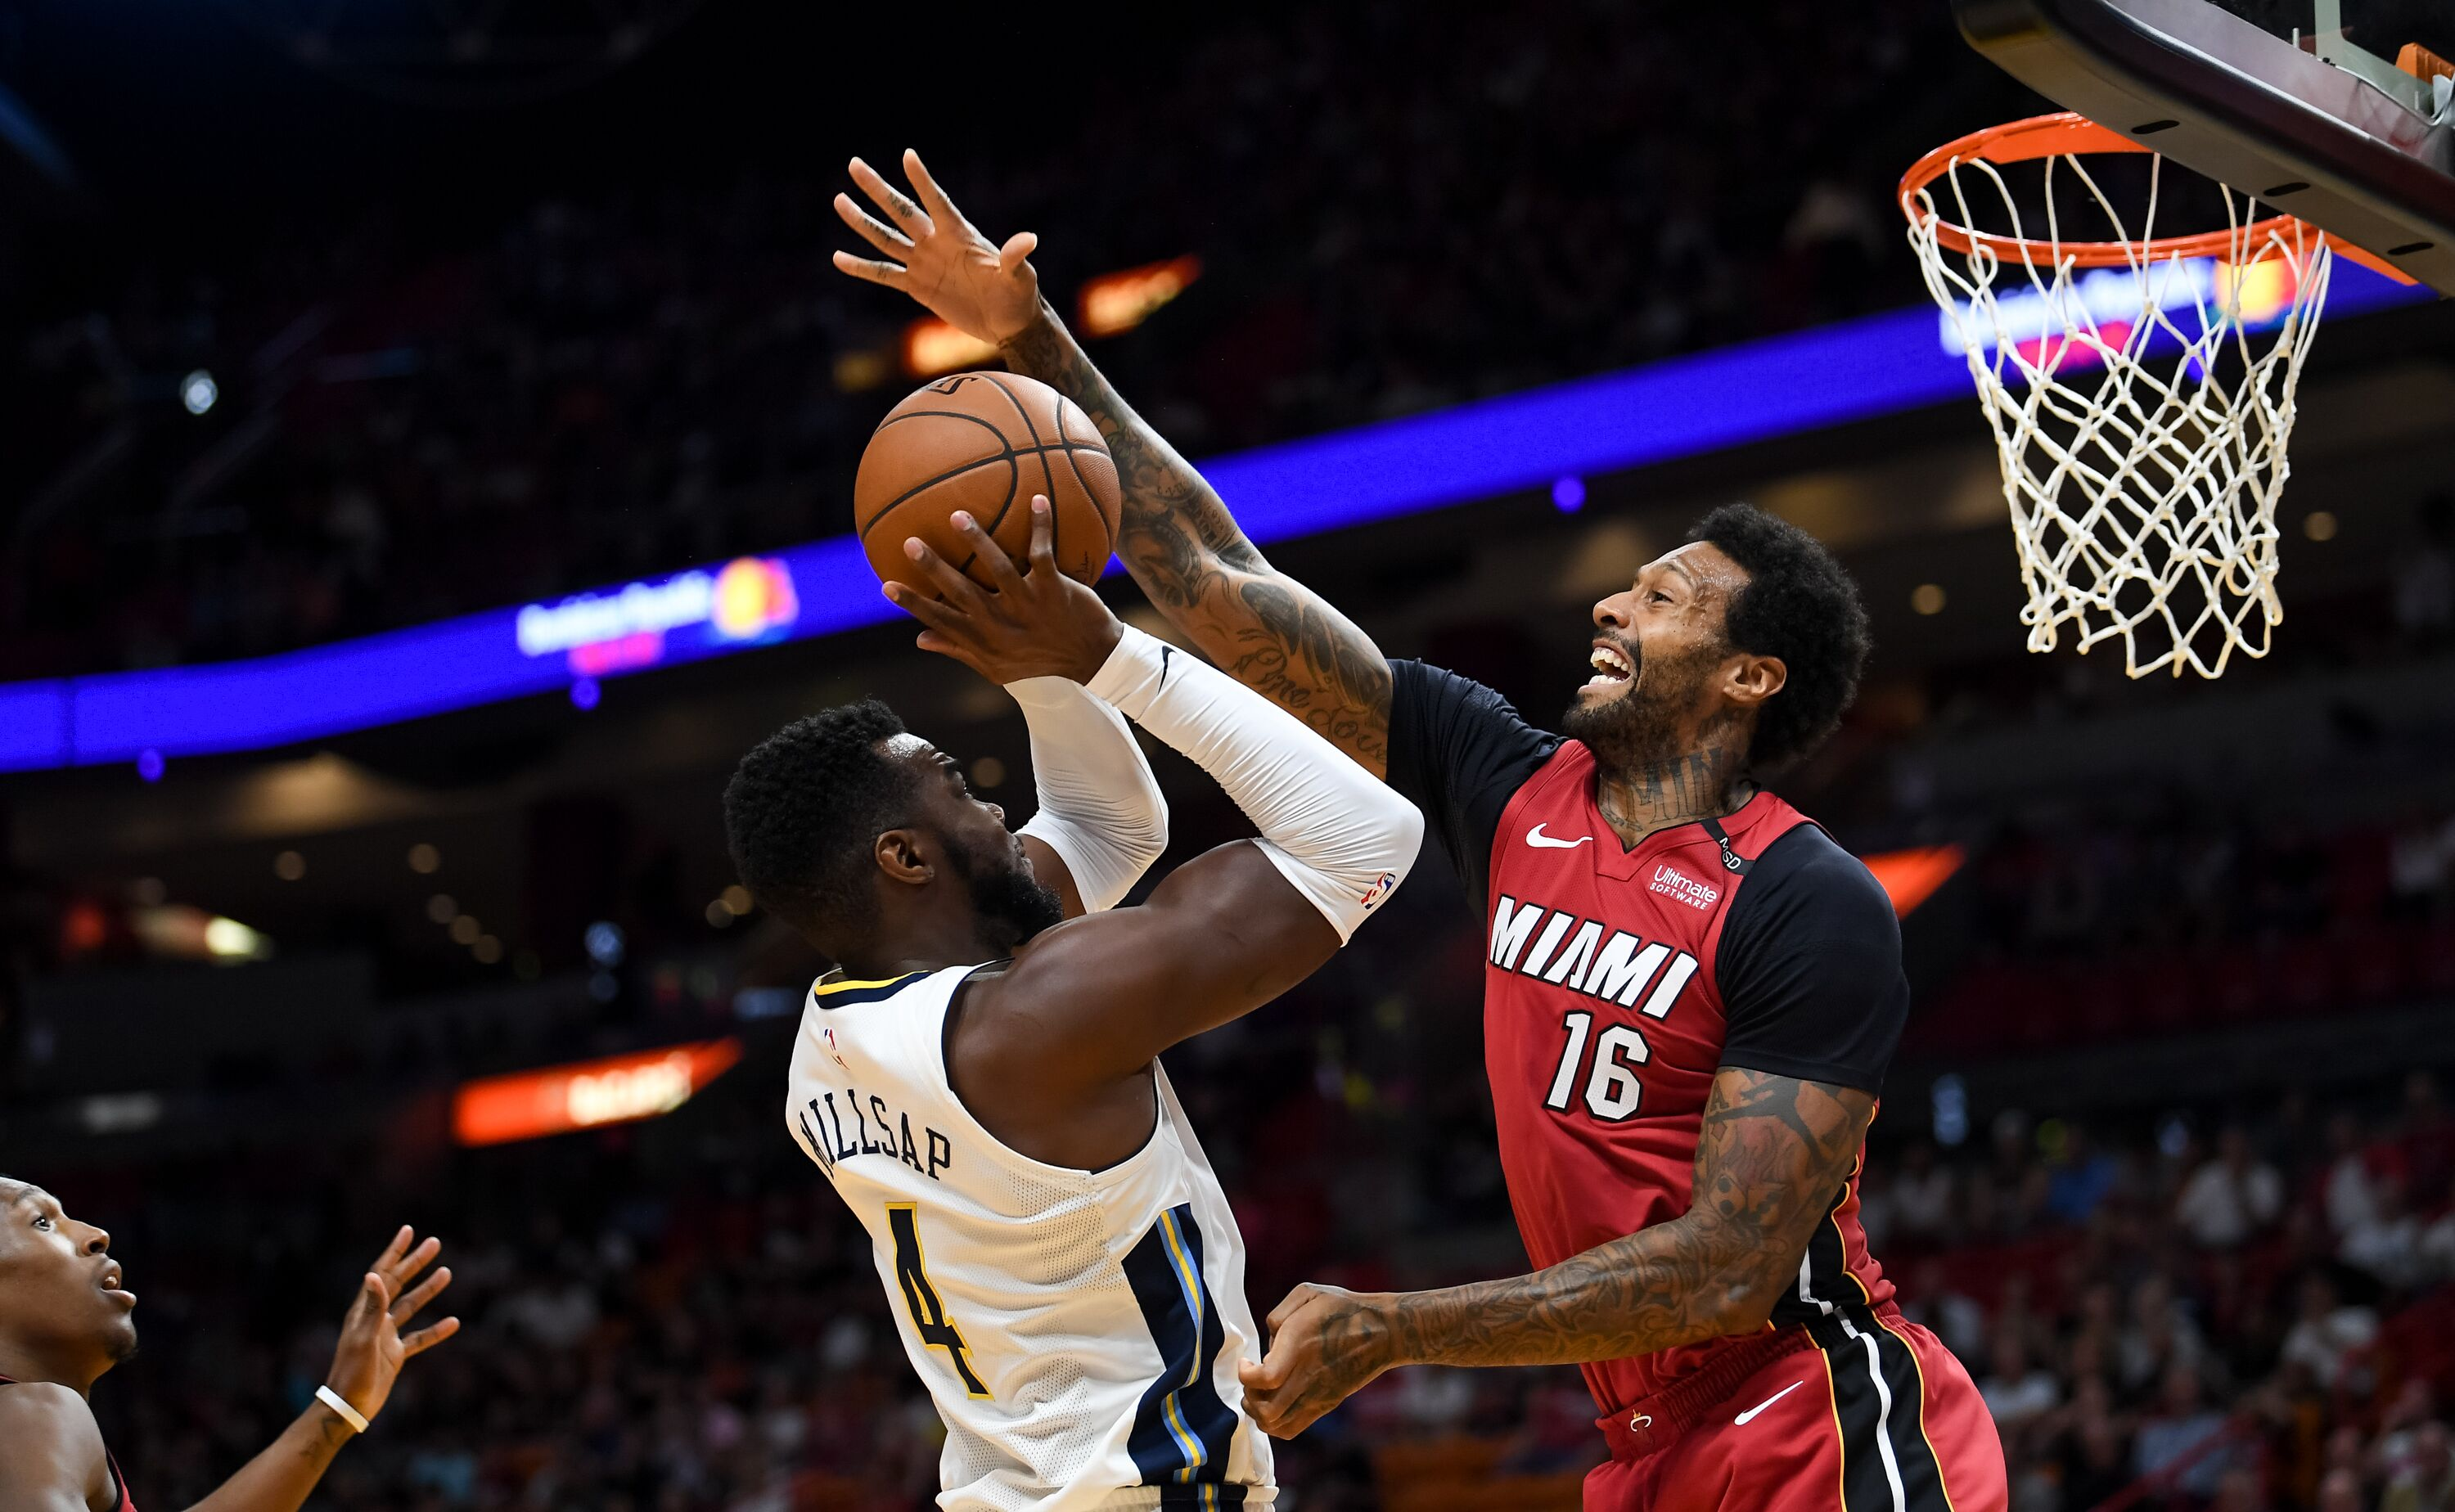 934732196-denver-nuggets-v-miami-heat.jpg